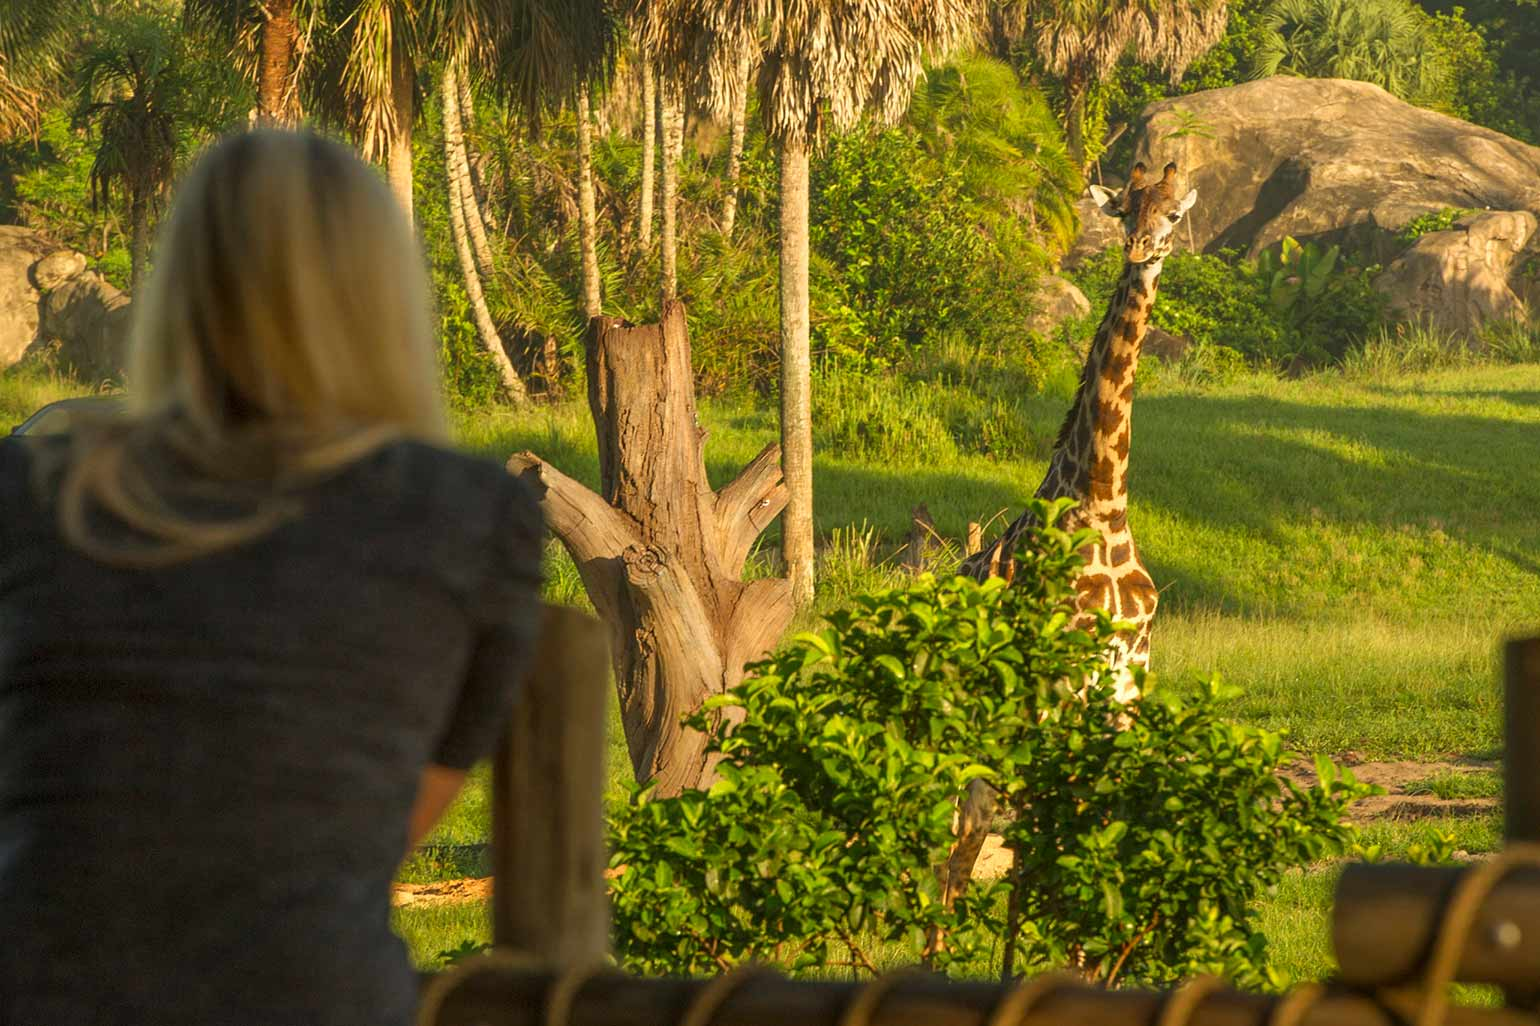 The Tree of Life stands above Disney's Animal Kingdom resort.